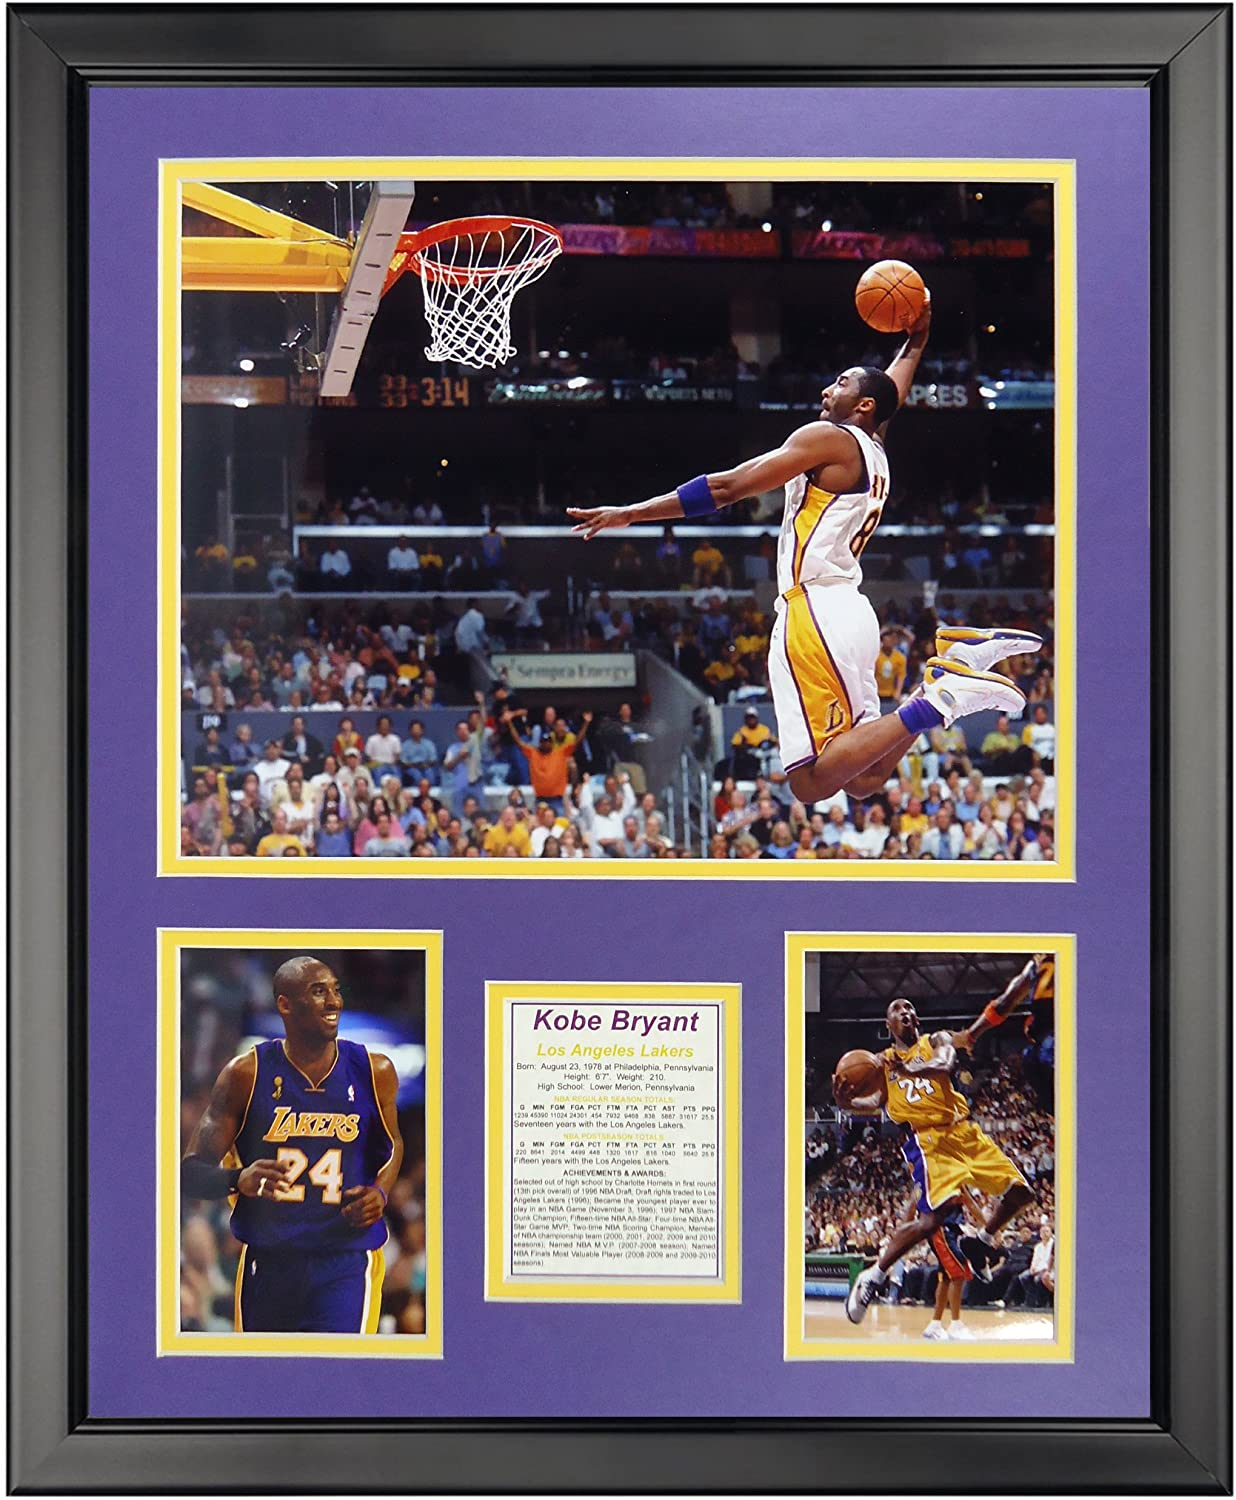 Legends Never Die Kobe Bryant - Photo Framed Dunk Mail order Complete Free Shipping 16